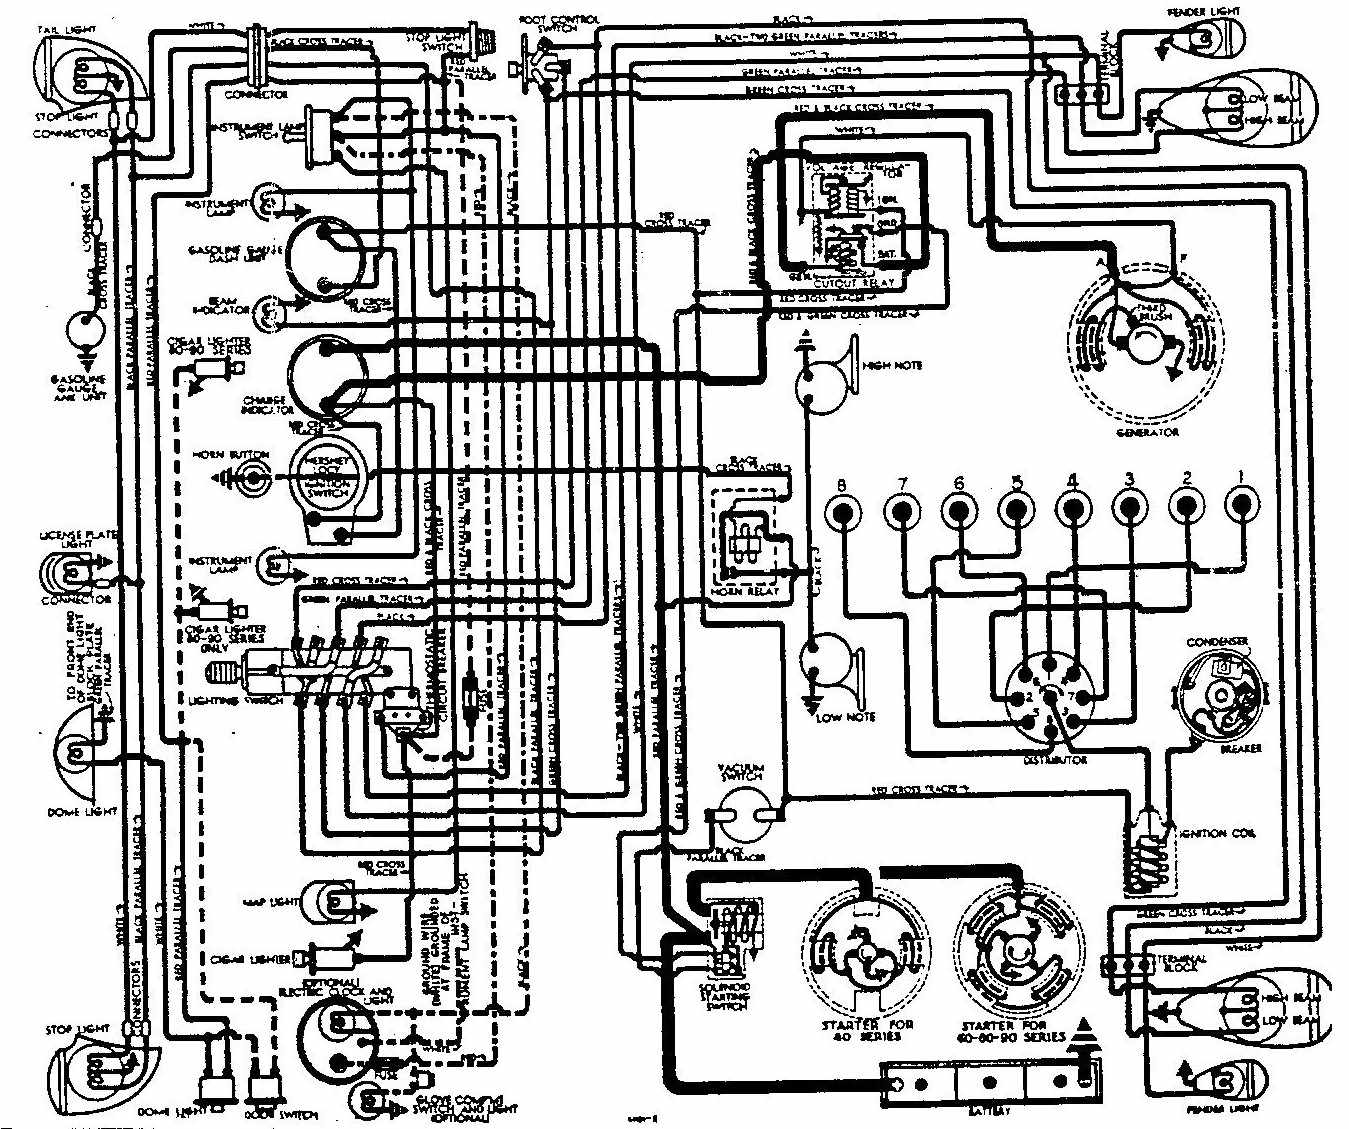 [SCHEMATICS_4US]  BE11C5 For 4000 Ford Tractor Wiring Harness Diagram | Wiring Library | Wiring Diagram For Ford 4000 Tractor |  | Wiring Library